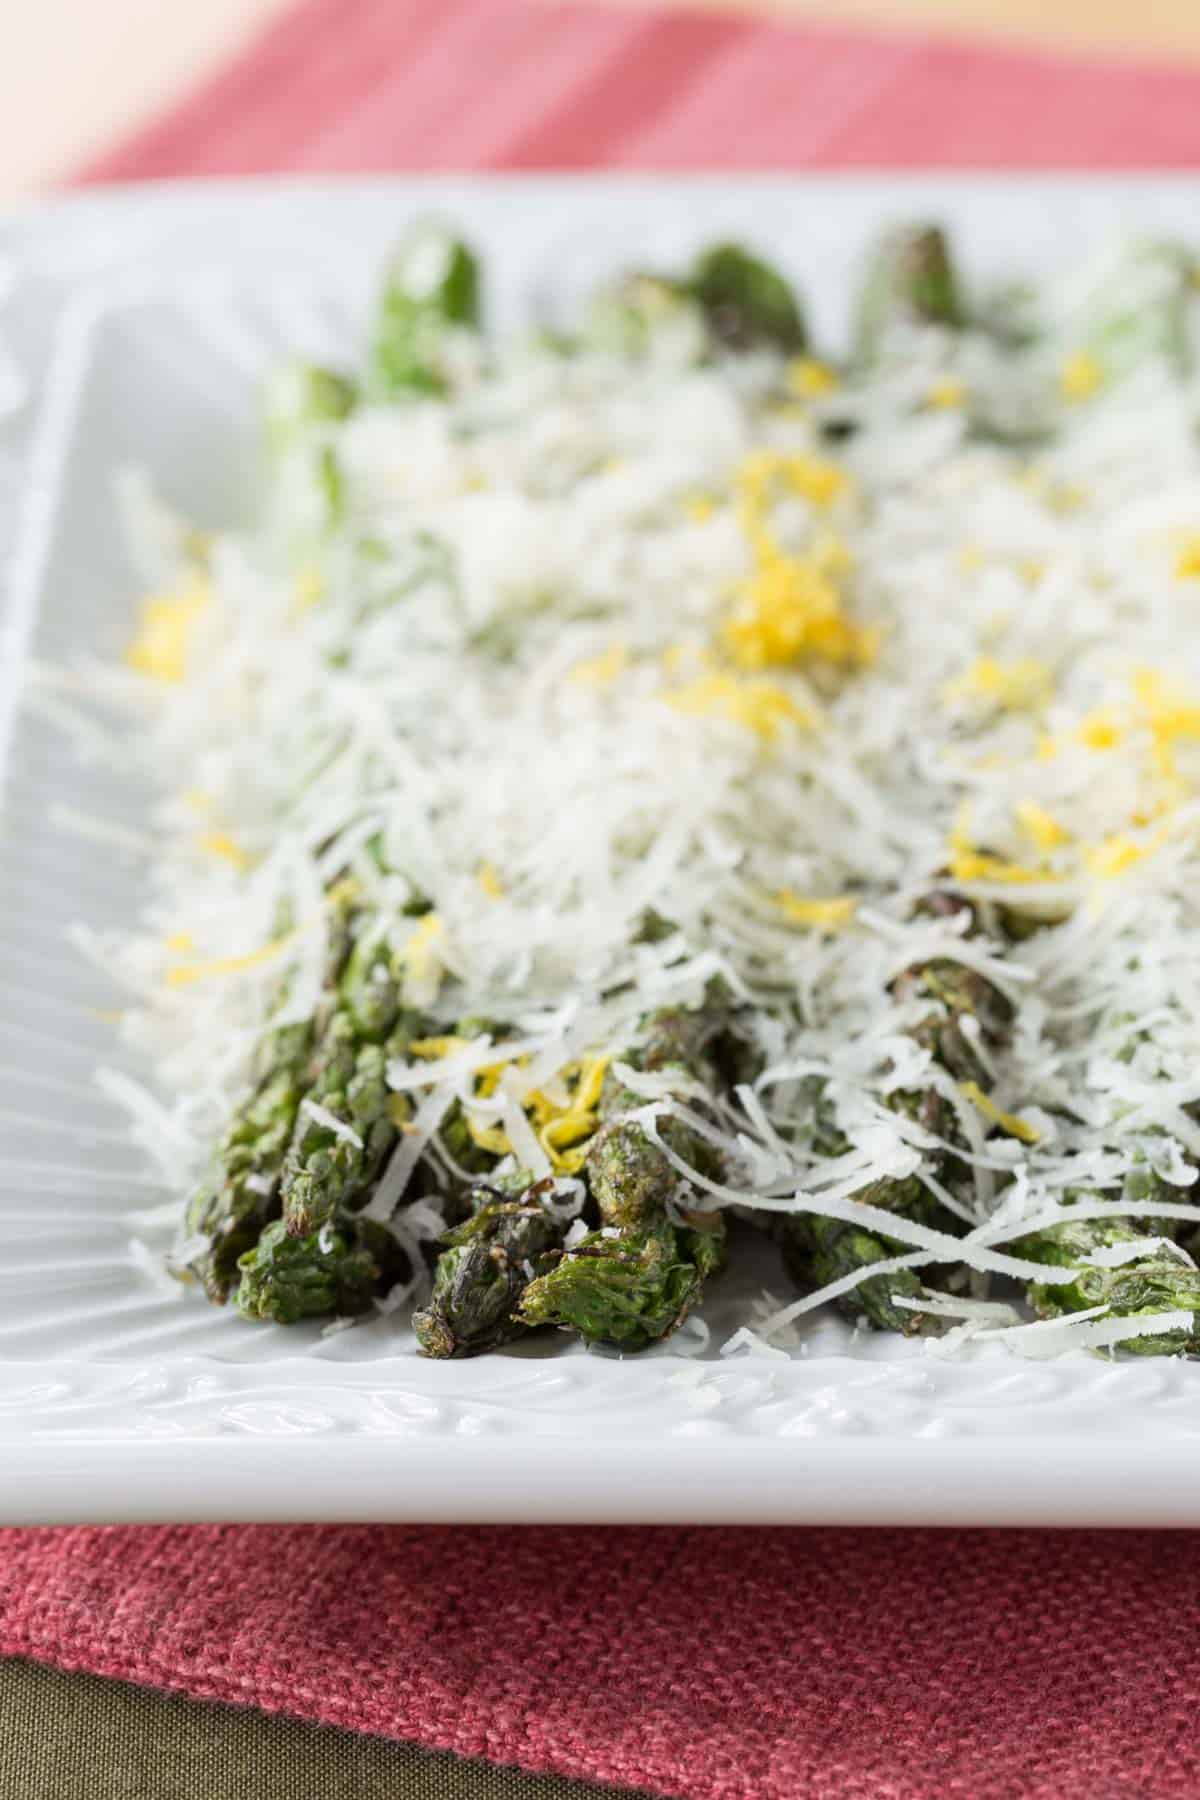 tops of asparagus that has been grilled and topped with lemon zest and finely shredded cheese